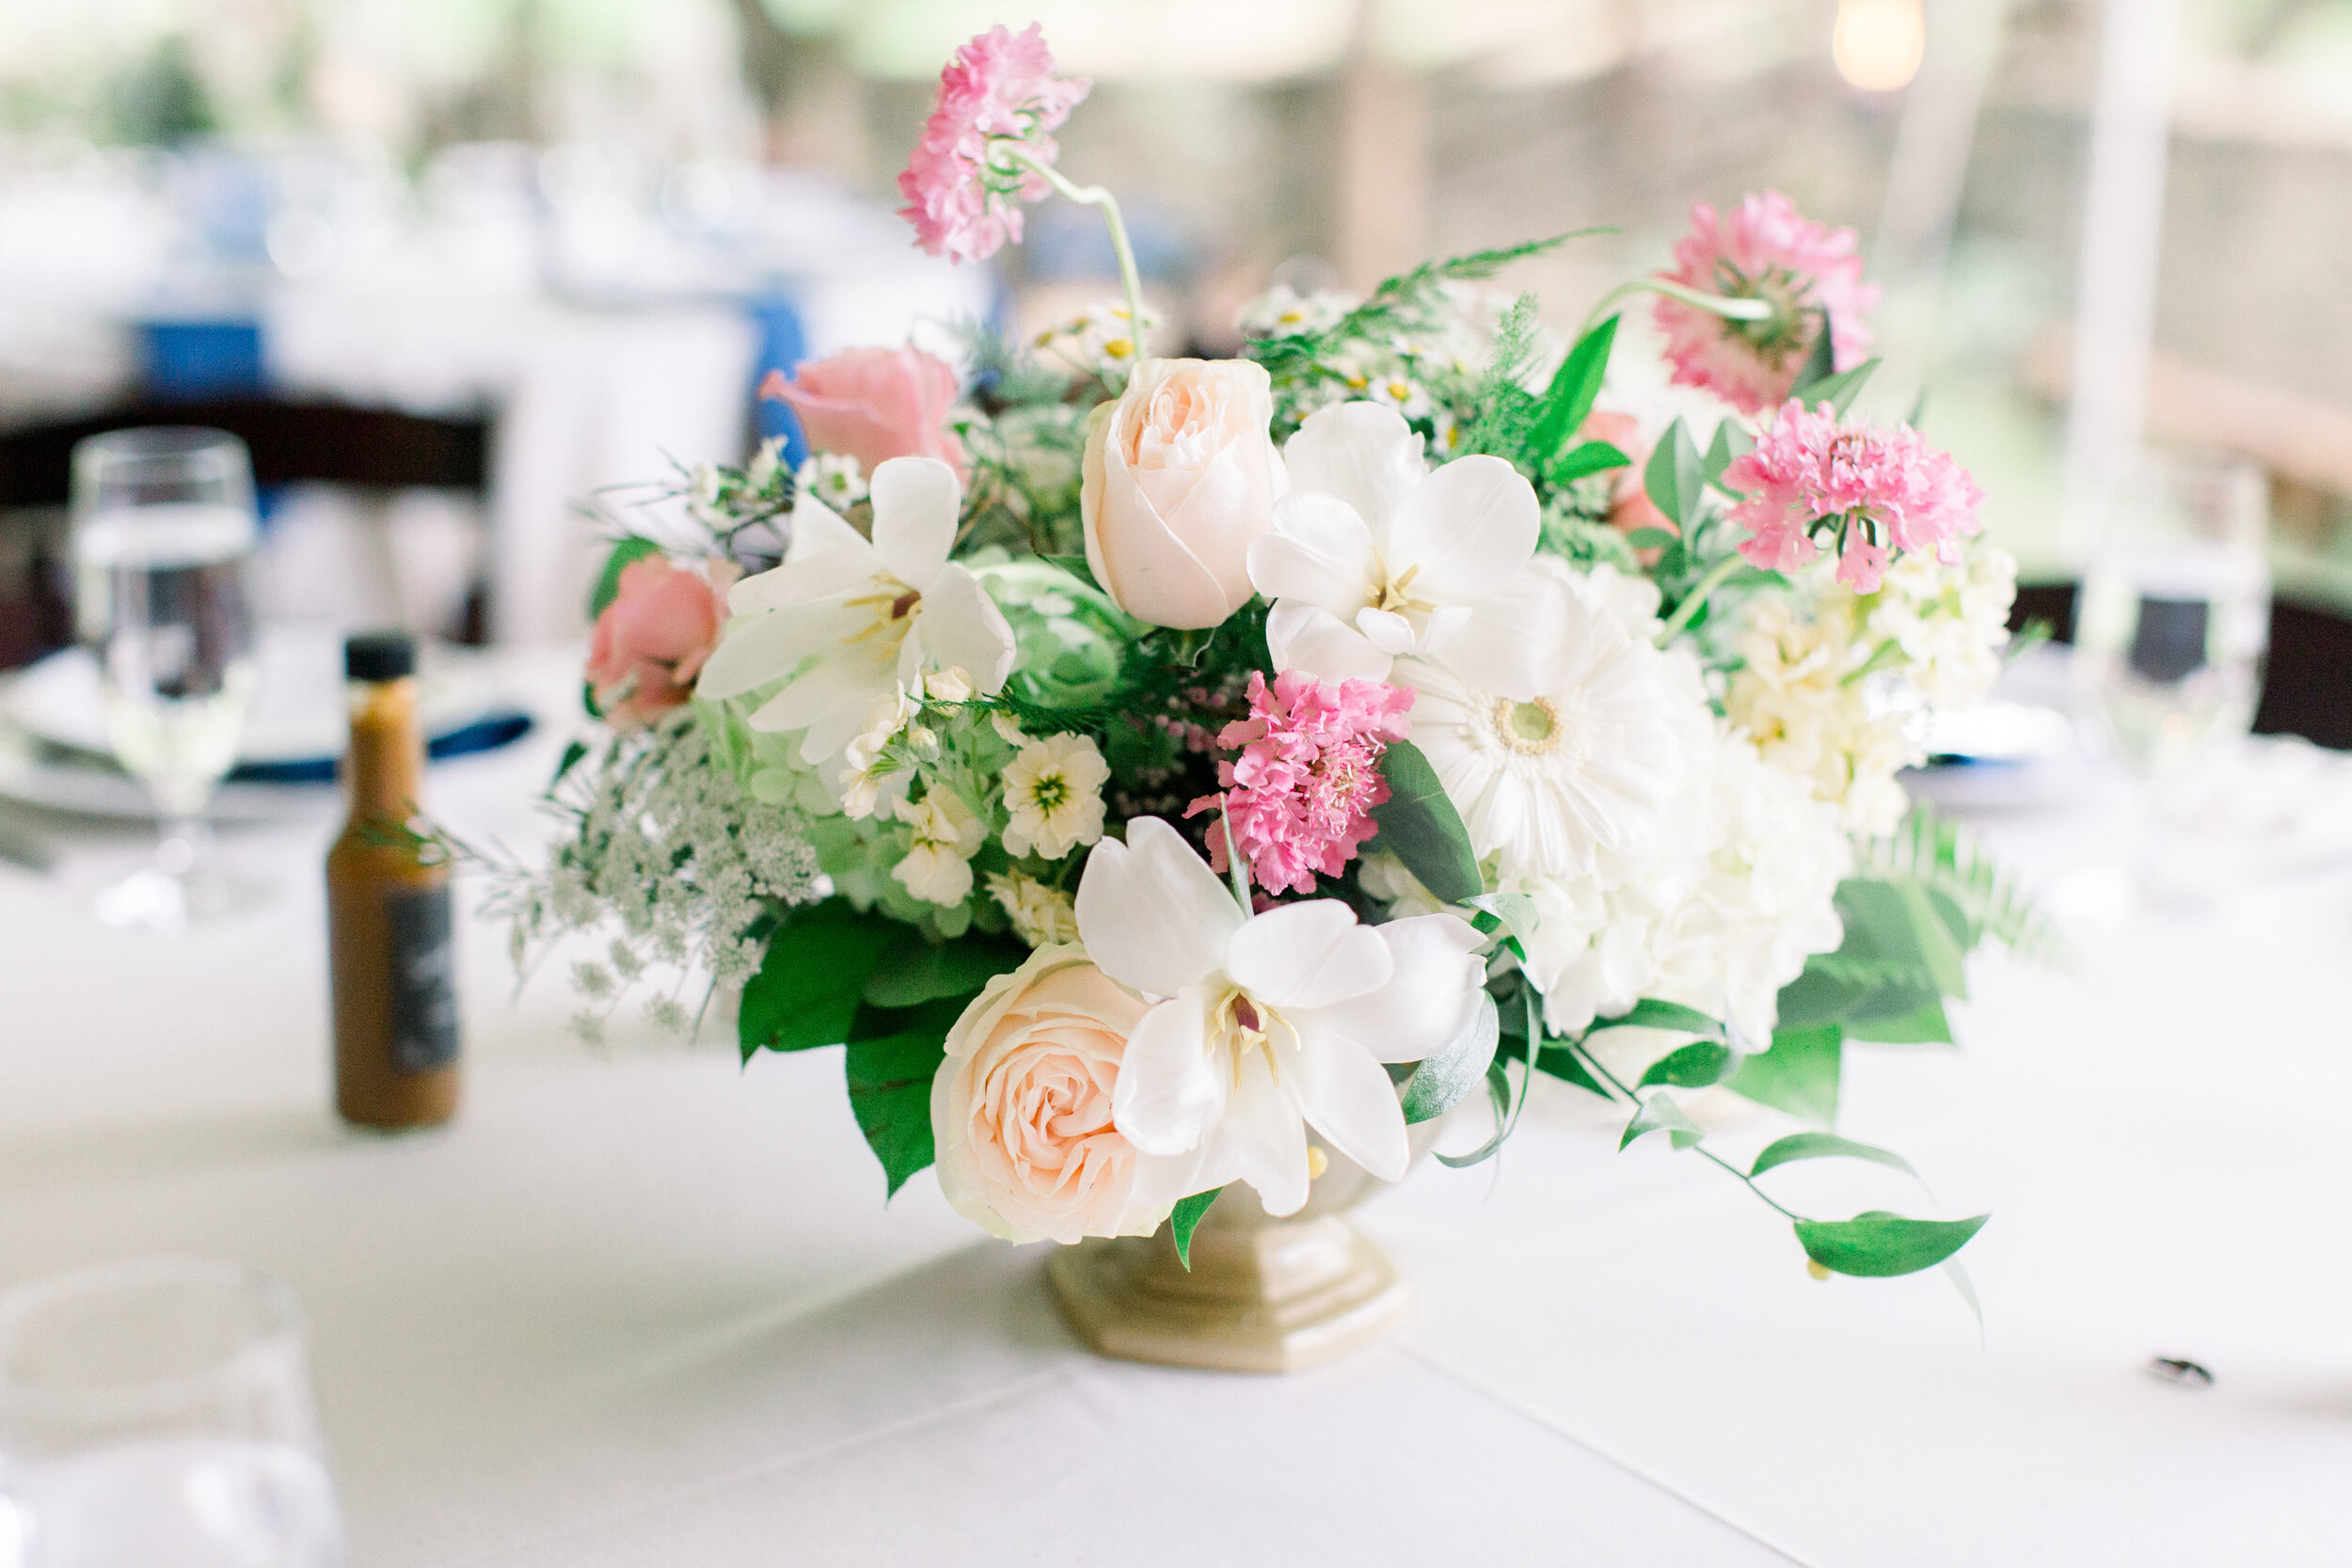 Centerpiece in white, pink, and yellow